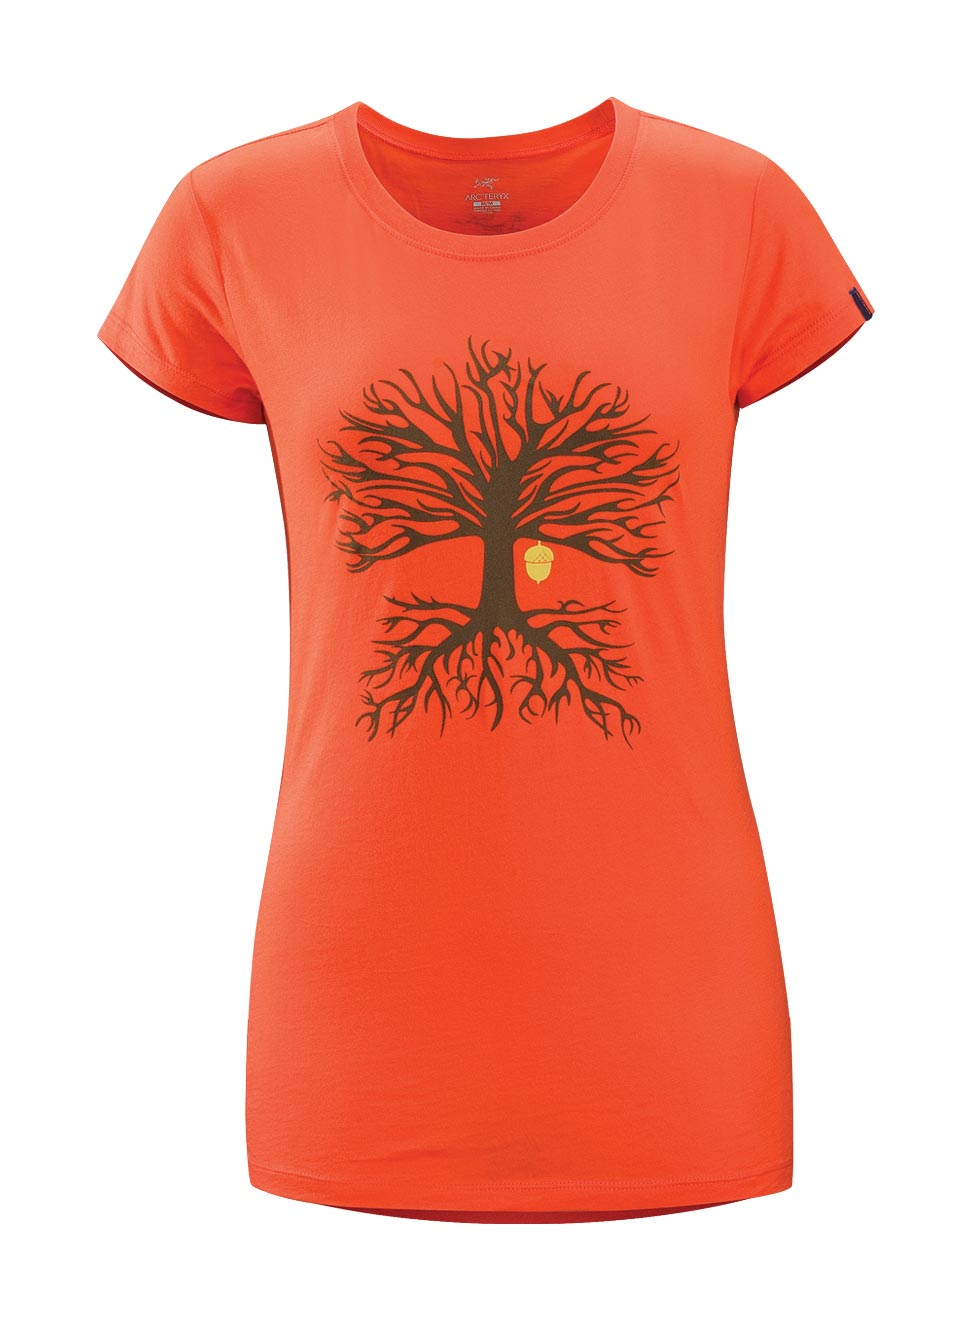 Arcteryx Nectar Evolution Tree T-Shirt